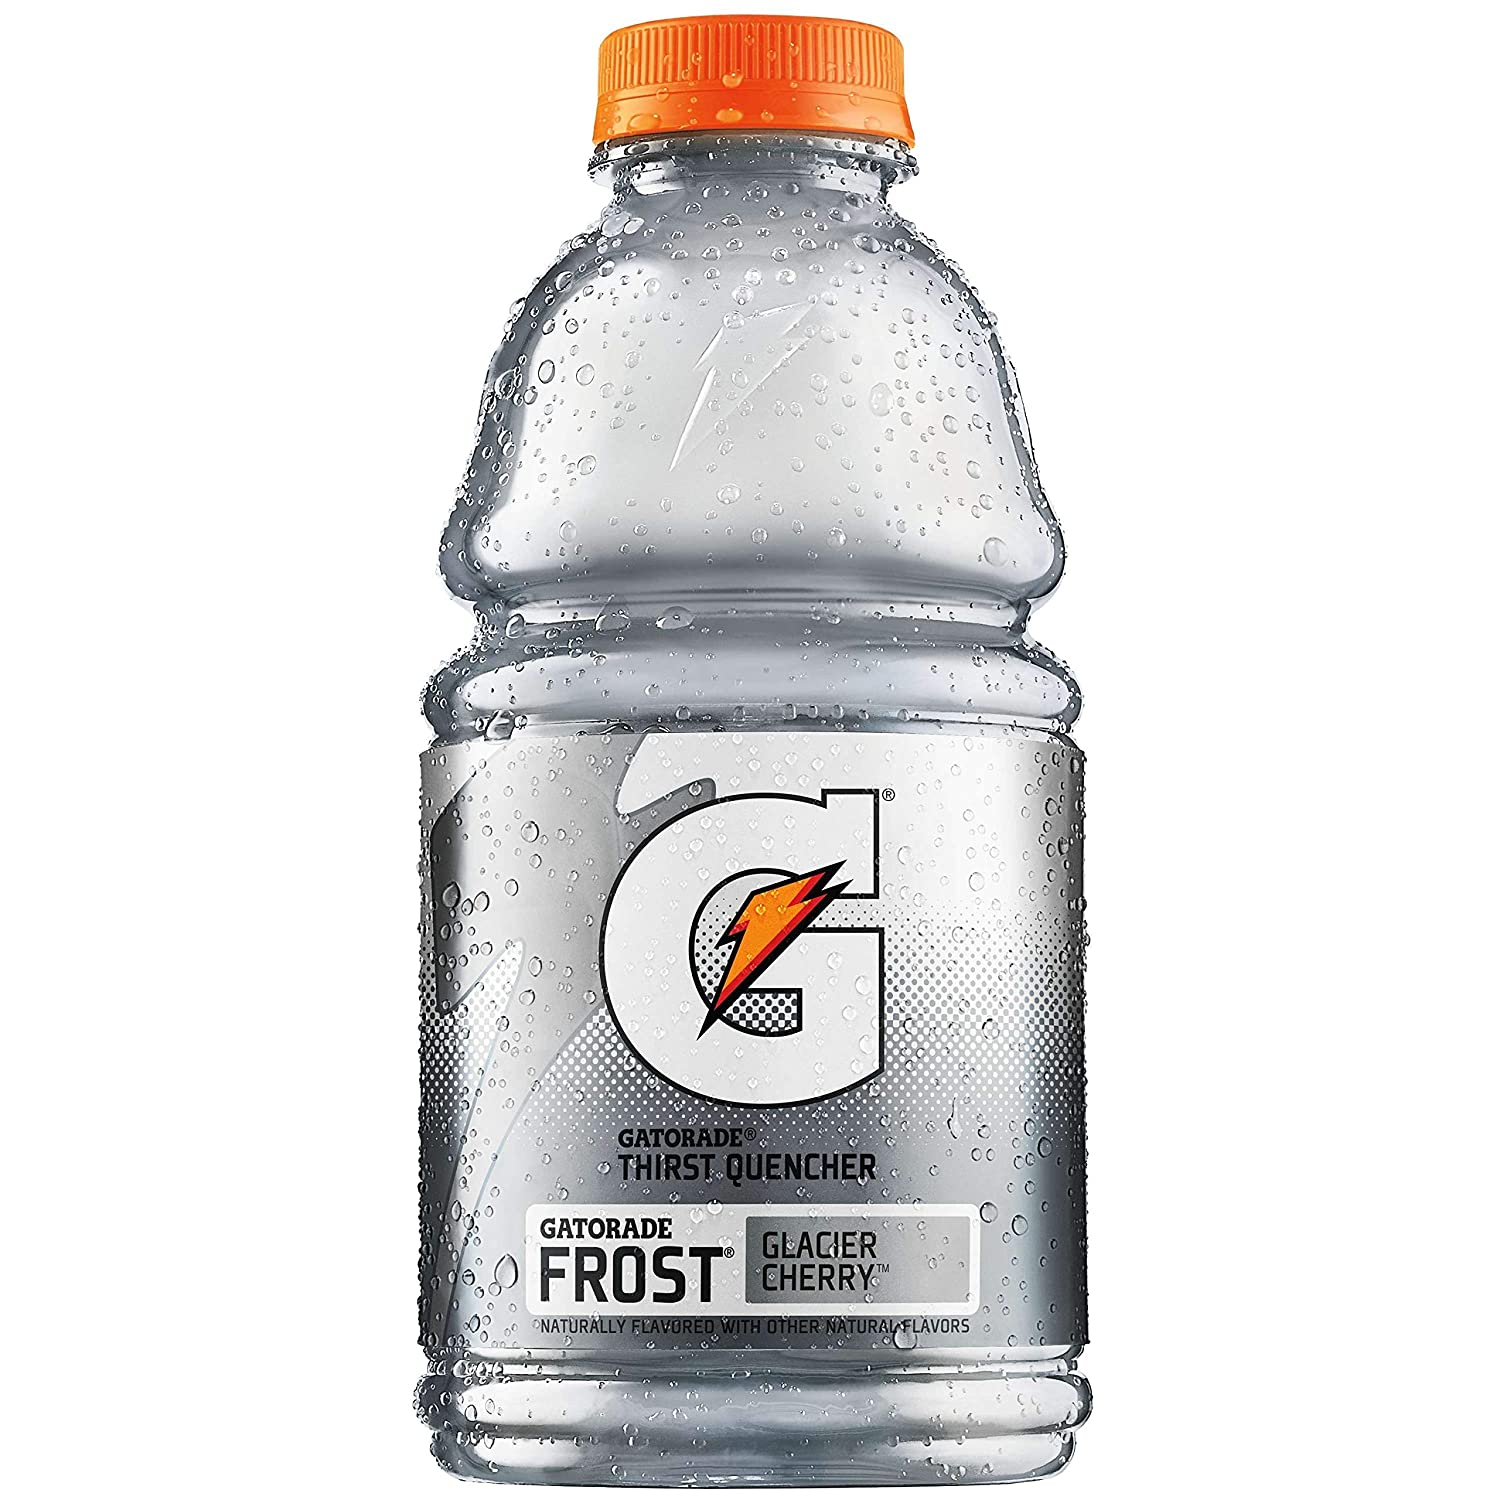 Gatorade Frost Glacier Cherry, White, Thirst Quencher Sports Drink, 32oz Bottle (Pack of 8, Total of 256 Oz)